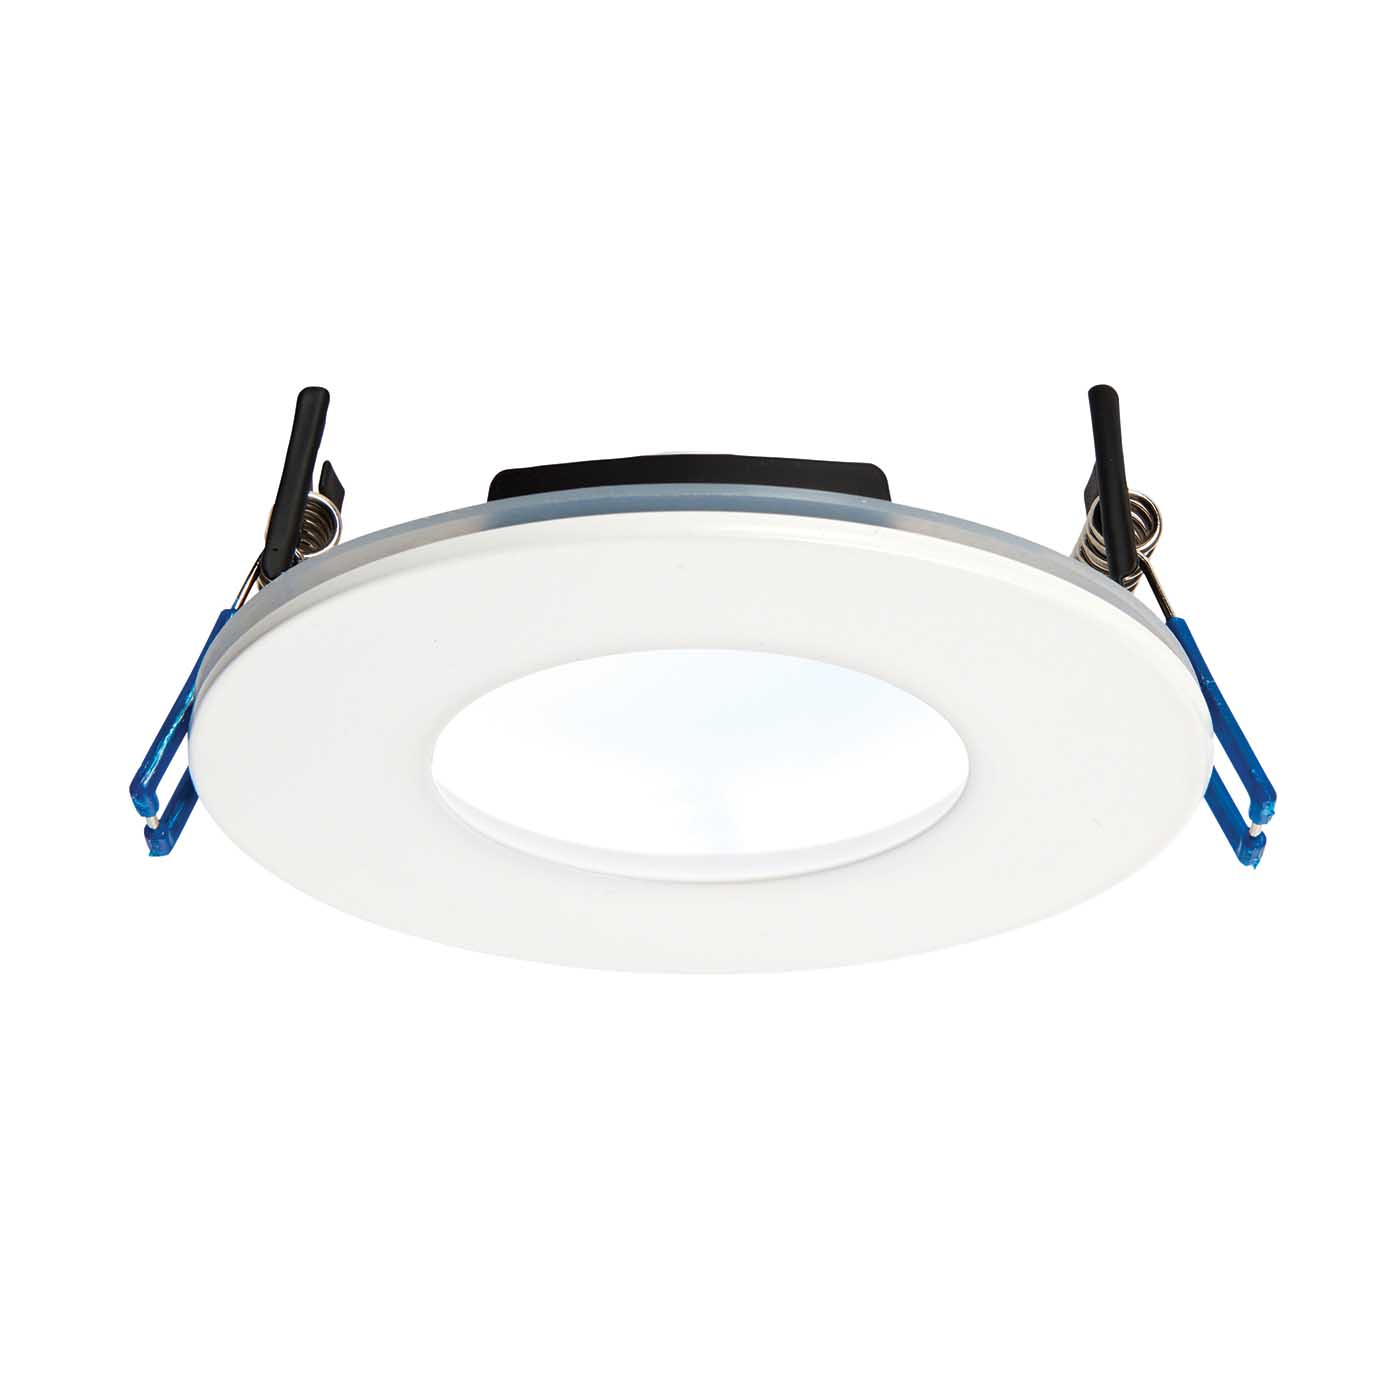 Saxby OrbitalPLUS Bathroom Recessed Fixed Light IP65 9W LED -SMD 2835 Cool White